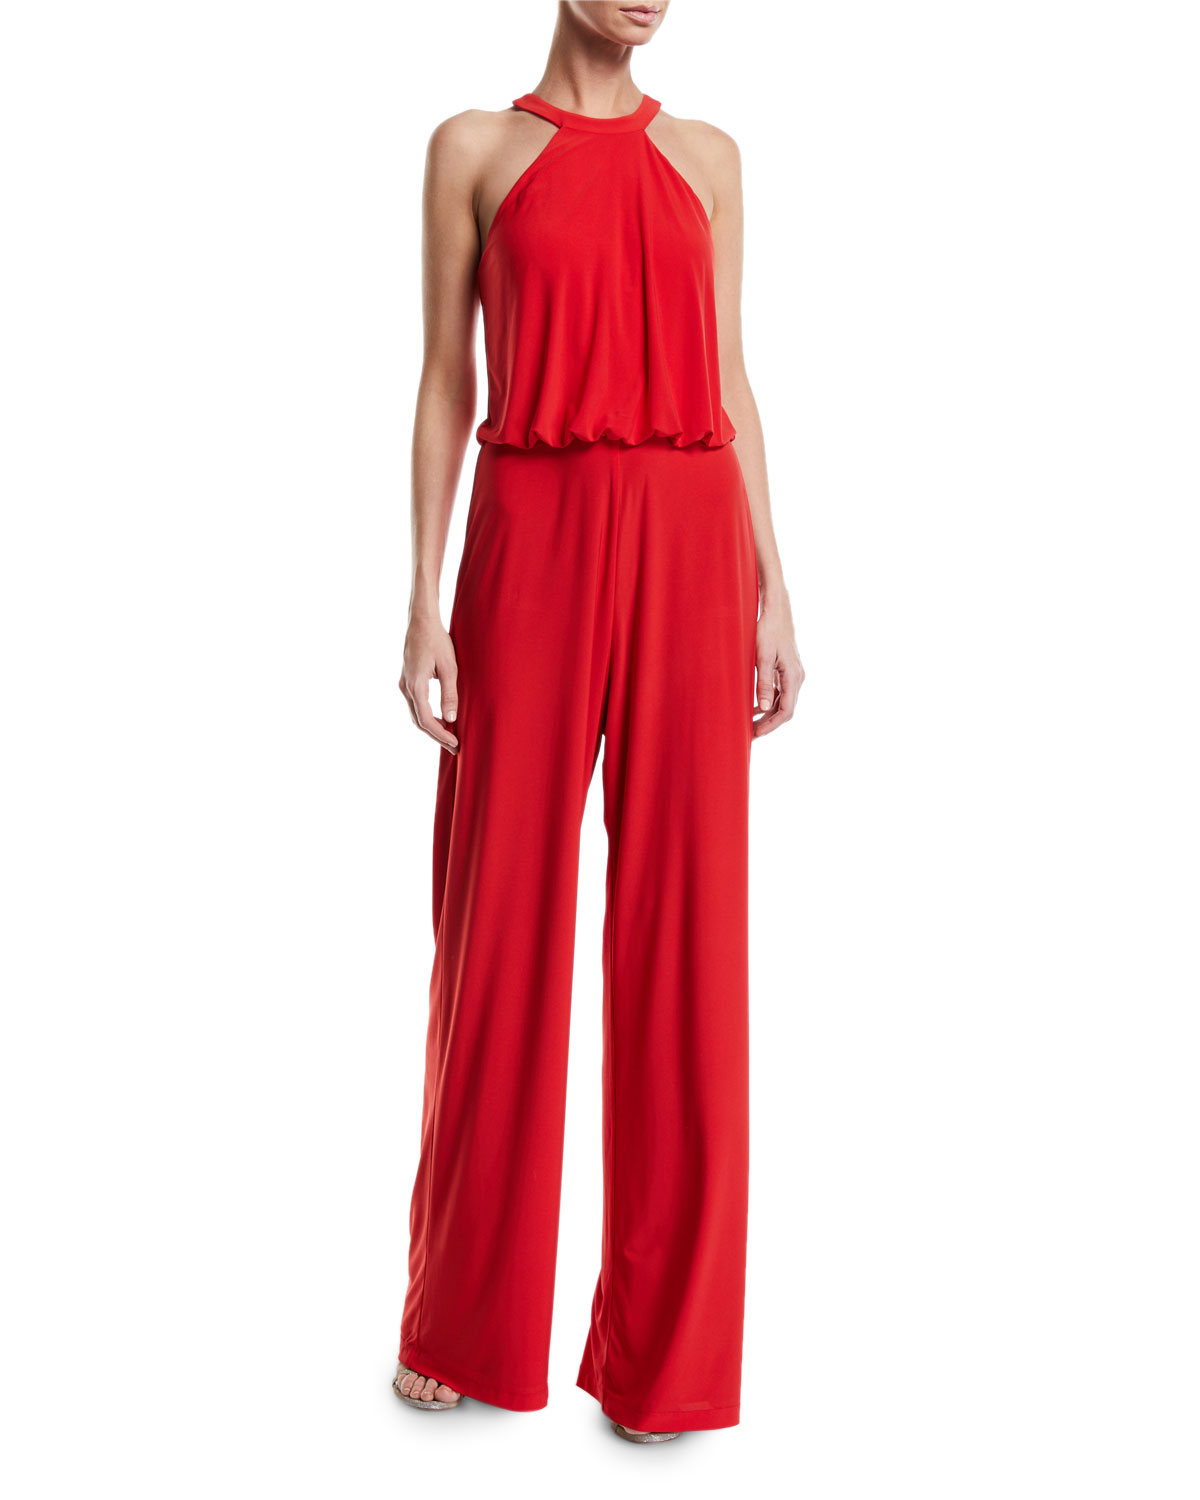 JAY X JAYGODFREY Anselm Halter-Neck Column Gown W/ Keyhole Front in Red